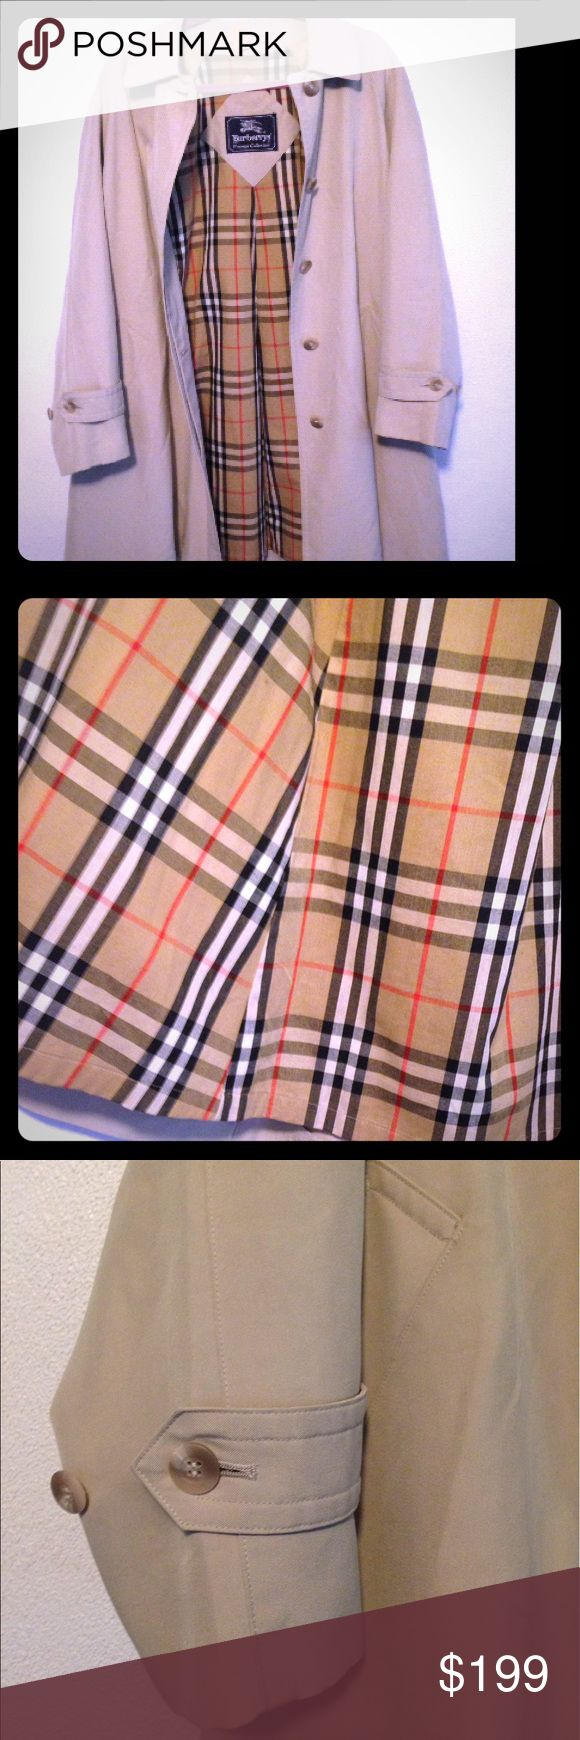 🍂 BURBERRY Jacket Size 8 Petite🍂 Pristine! Absolutely Gorgeous, Vintage Burberry Jacket in a Size 8 Petite. This is a Impressive Piece, Circa the Mid 90's. It features very light padding in the shoulders, the Burberry Nova Check Inner Lining that Burberry is Known for. There are No Signs of Wear & Has Been Dry Cleaned, So it is Ready For Fall's First Rain! I'm Letting this Go, Only Bc LA Doesn't see Much Rain at All, So it Sits Hanging. SALE PRICE PRICD FIRM. Looking to clean out for new…